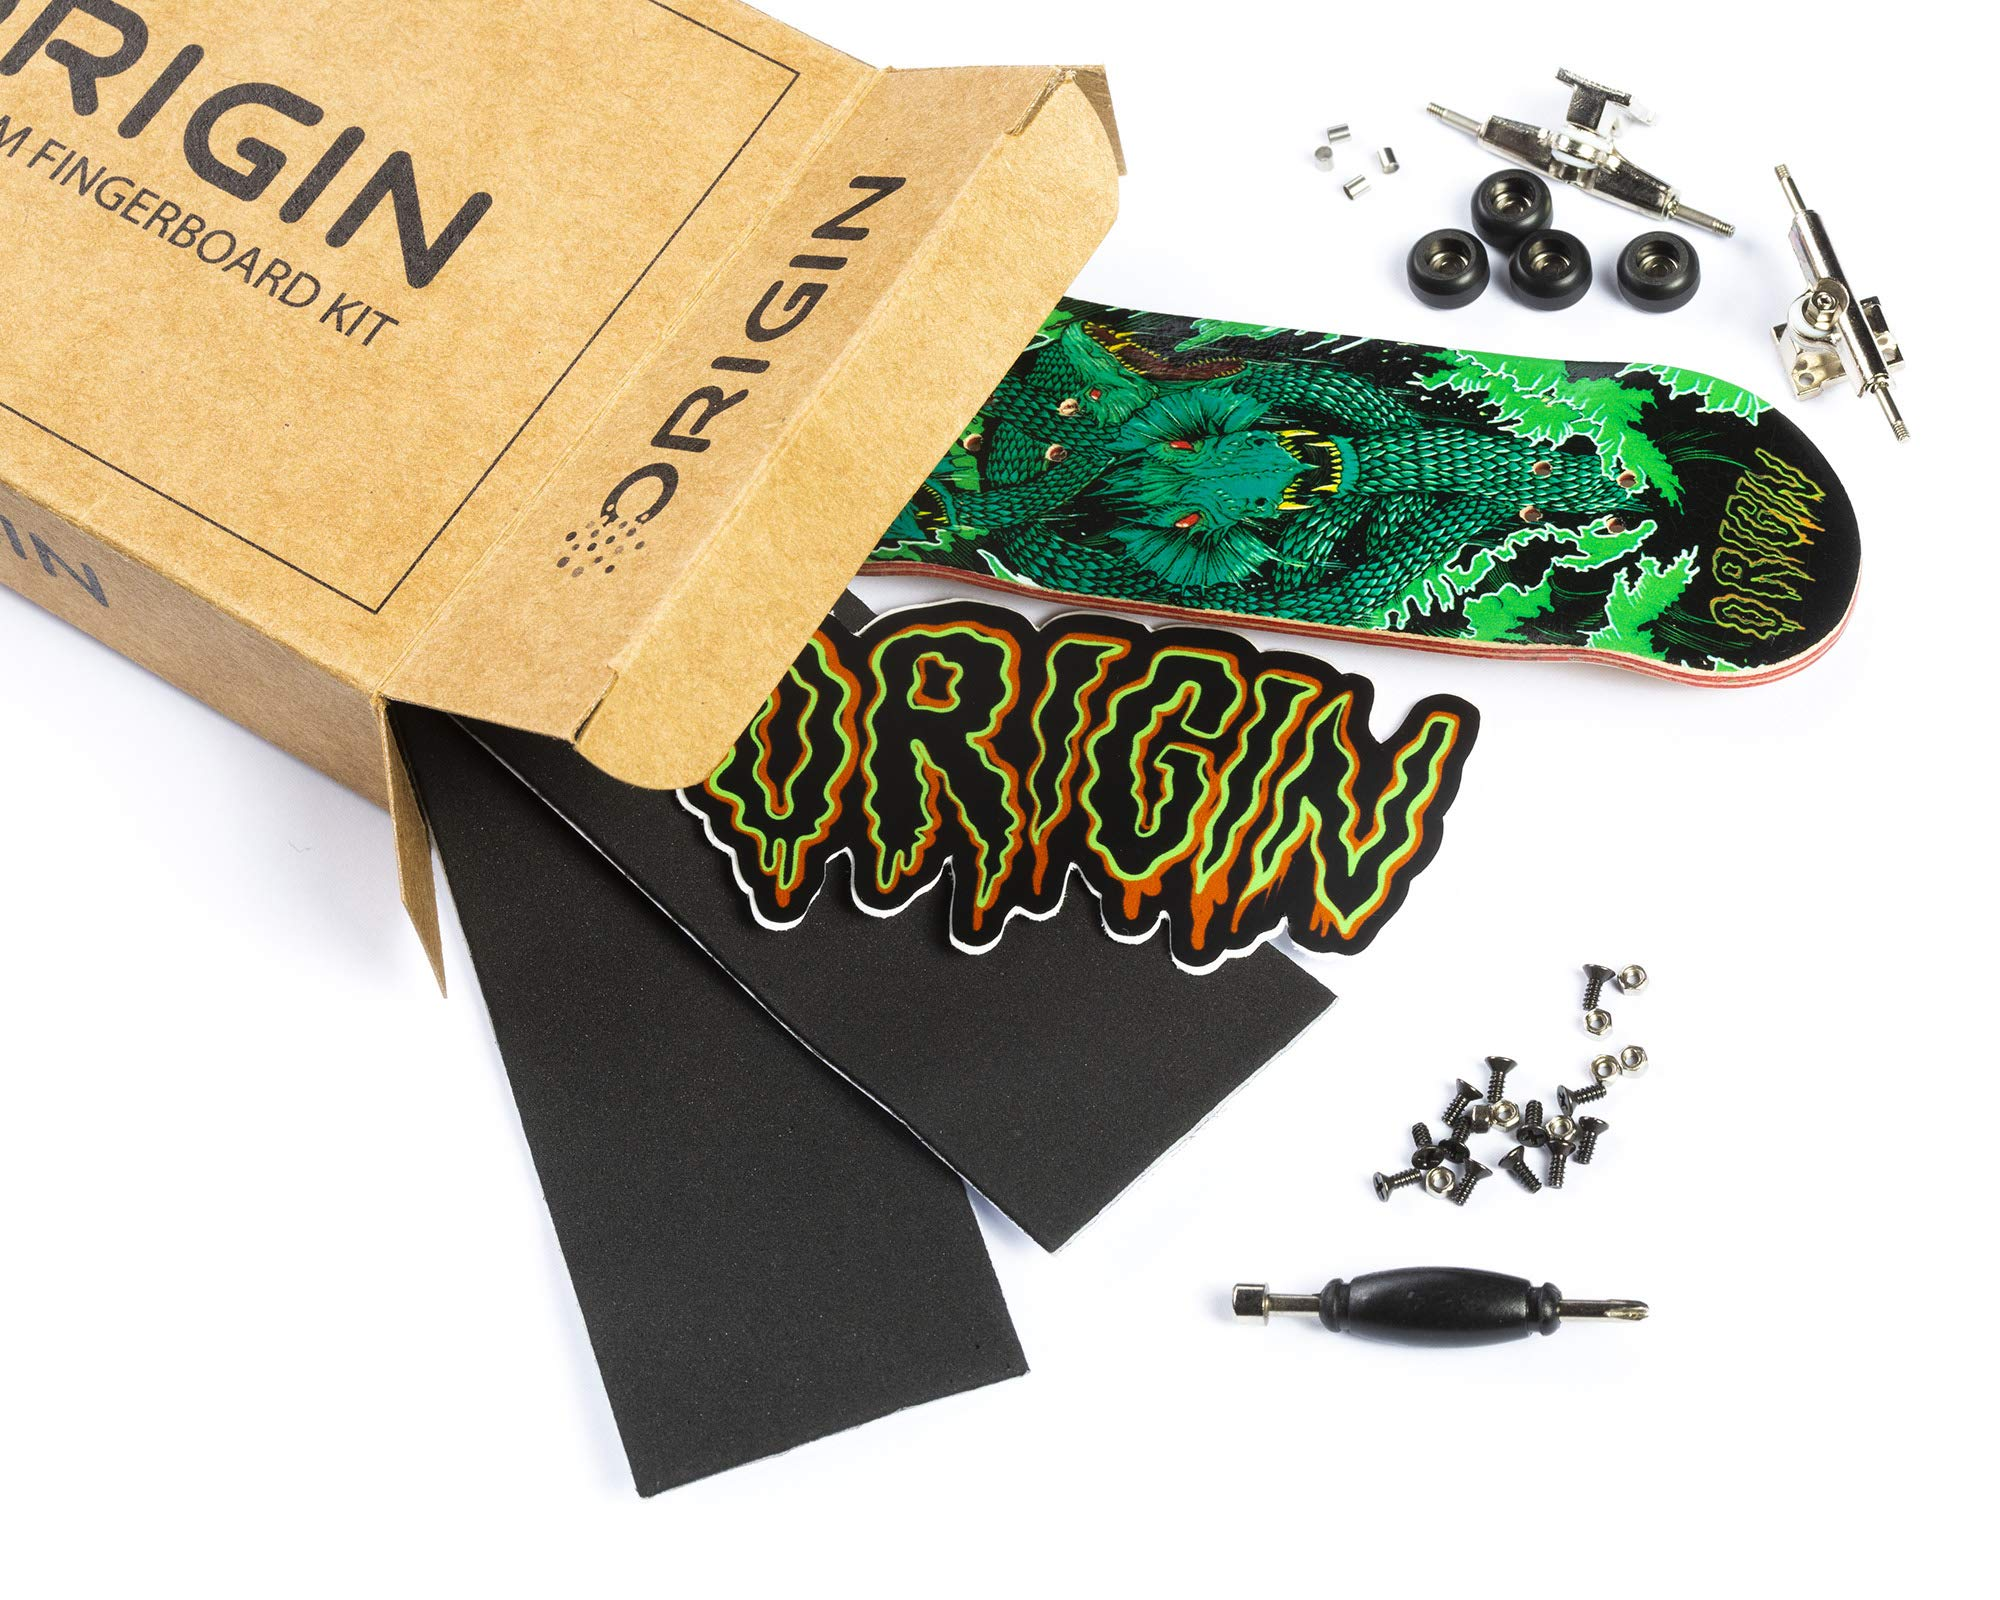 Origin Fingerboards Premium Graphic Fingerboard Kit - 32mm 5-Ply Canadian Maple Skateboard Toy with CNC Bearing Wheels (Hydra) by Origin Fingerboards (Image #1)